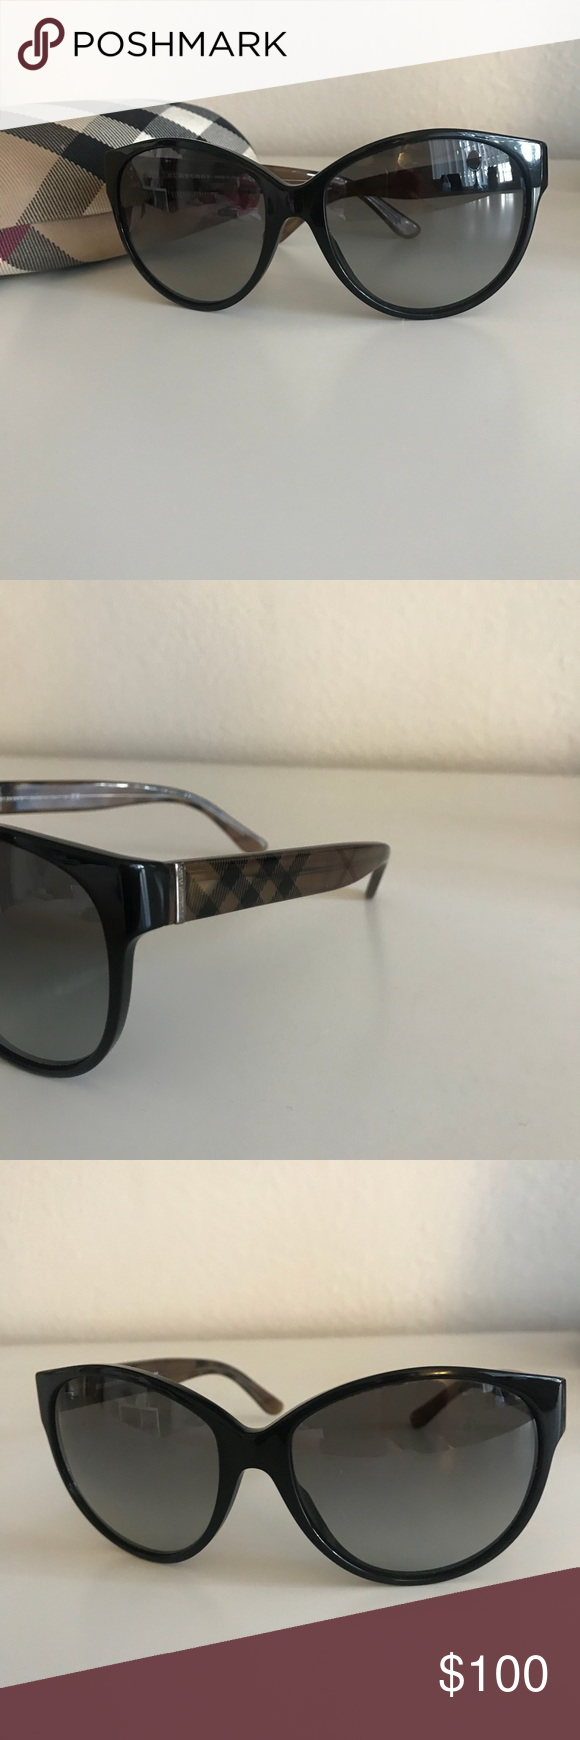 23fd50aa1a2b Burberry Sunglasses B 4088-M. Worn a handful of times. Comes with case. Burberry  Accessories Sunglasses